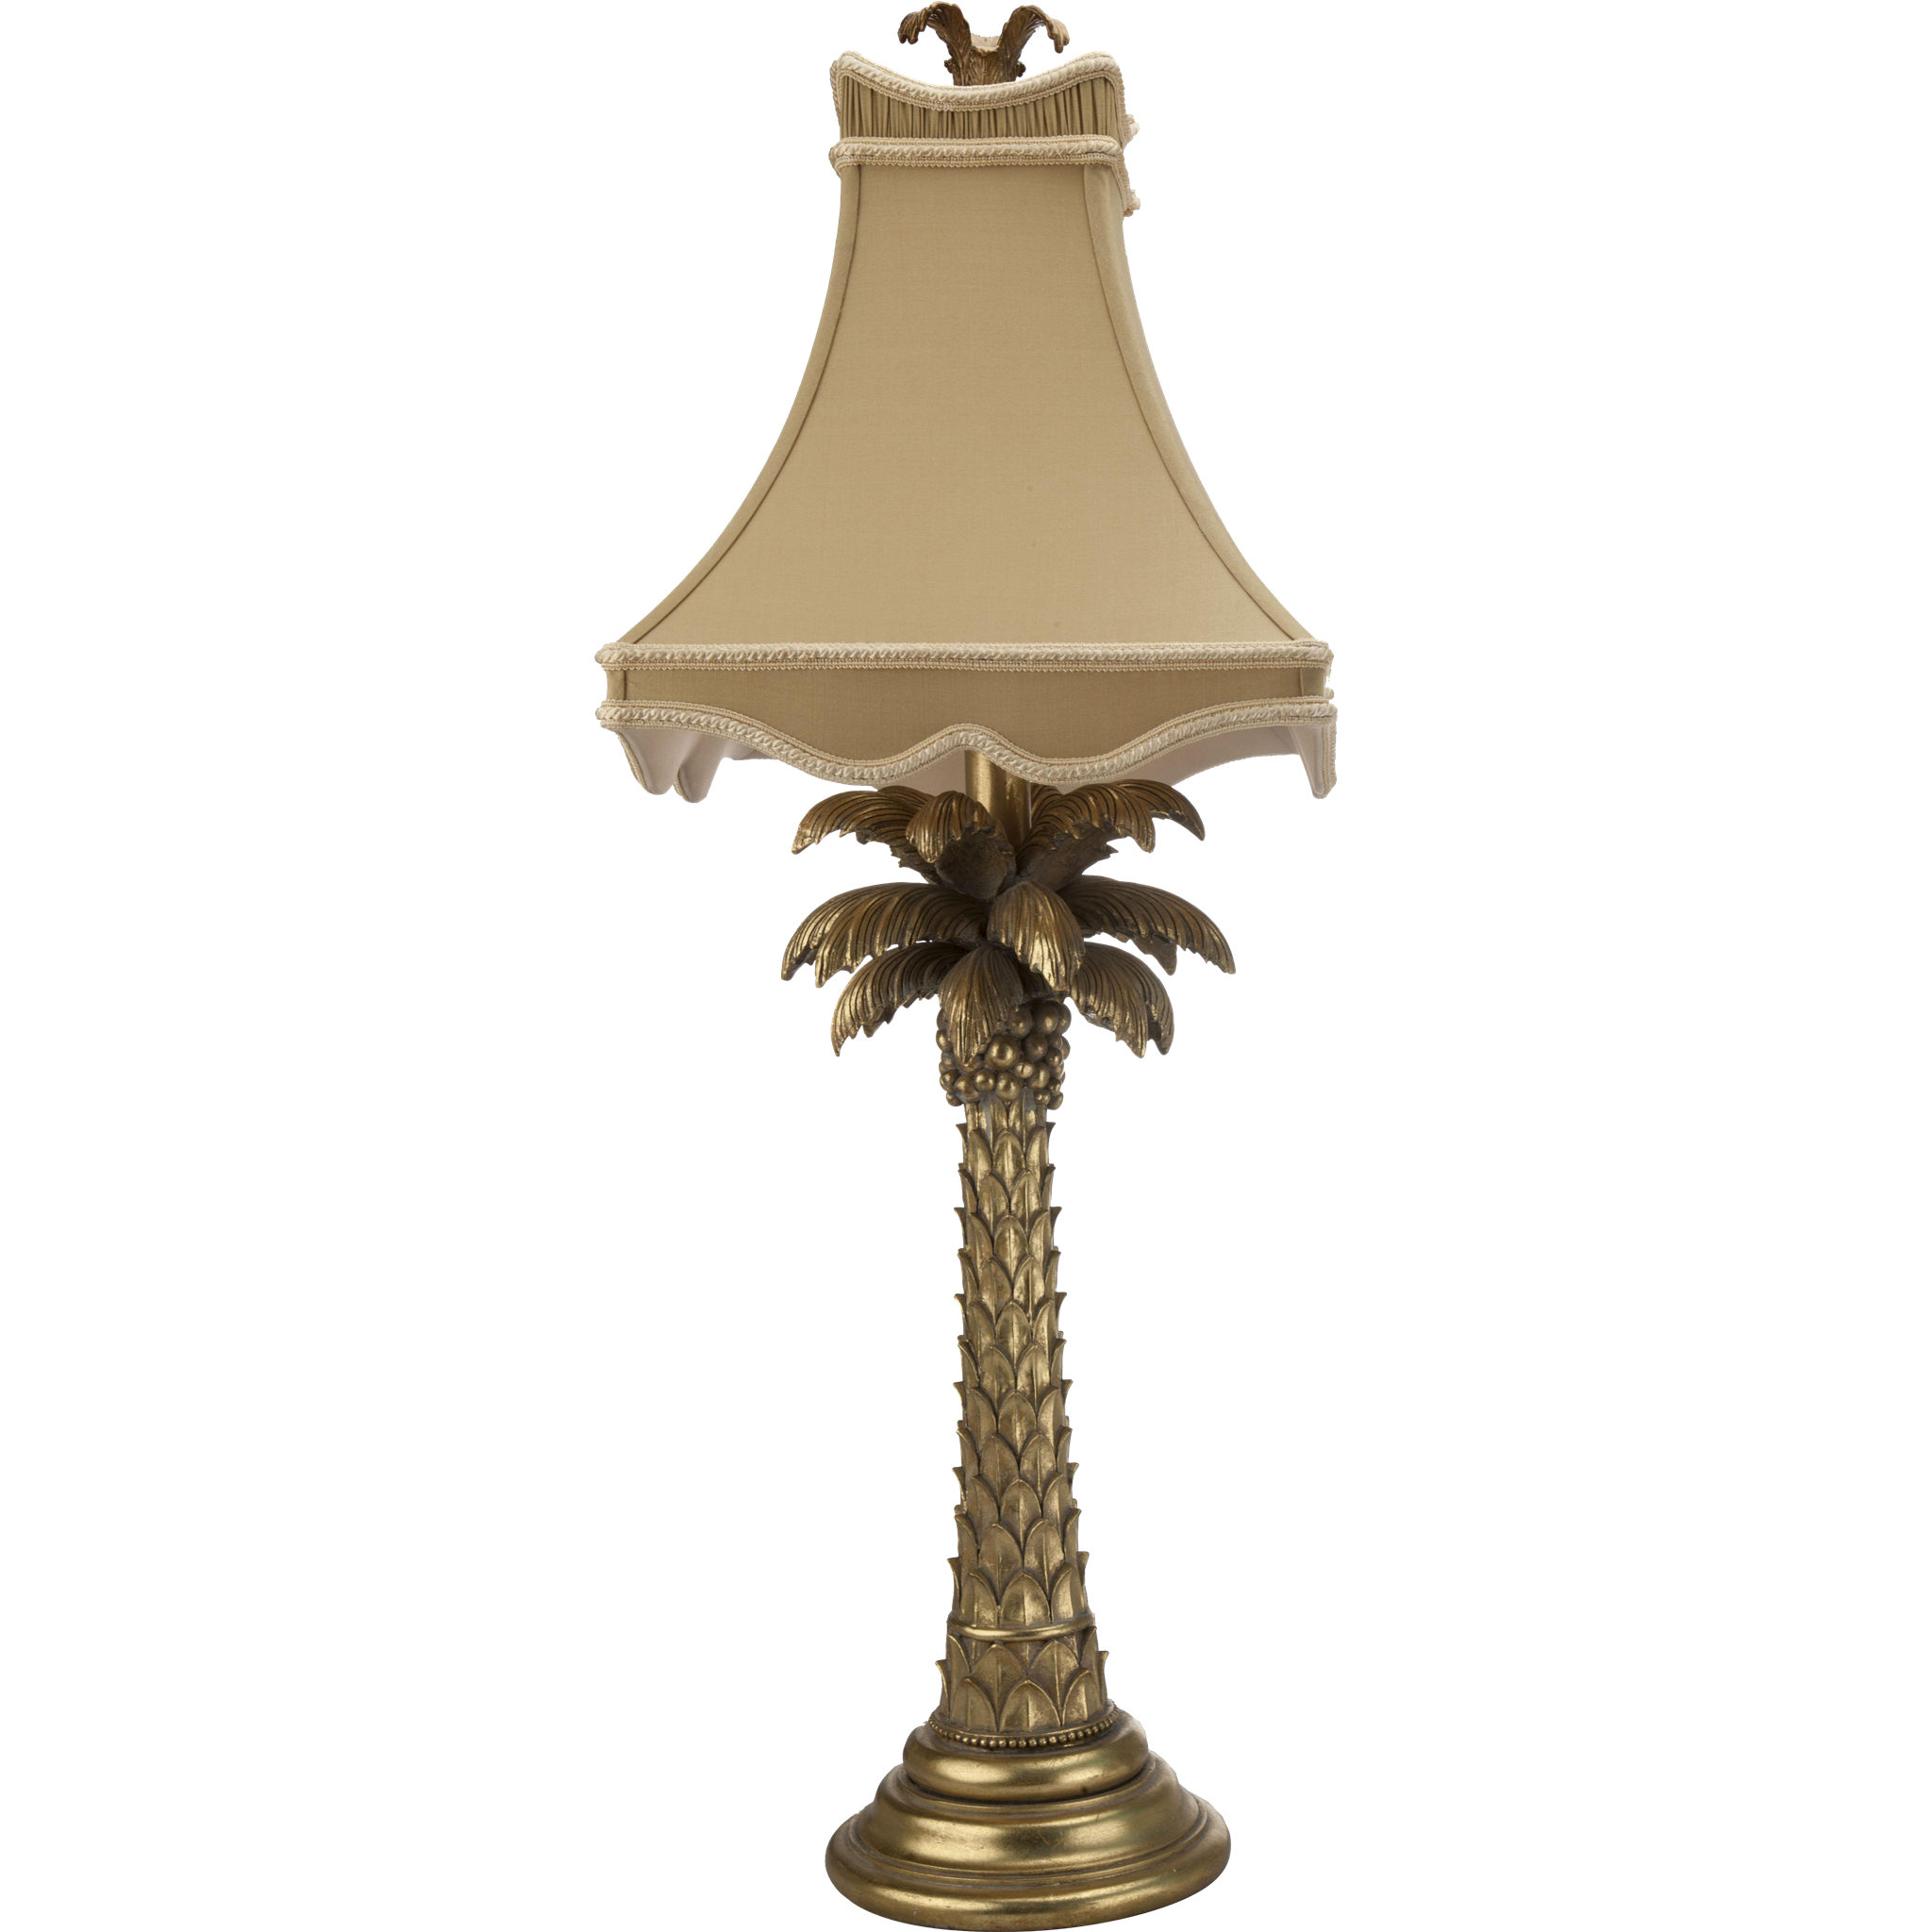 Gold Palm Tree Table Lamp From Treasurekeepers On RubyLUX